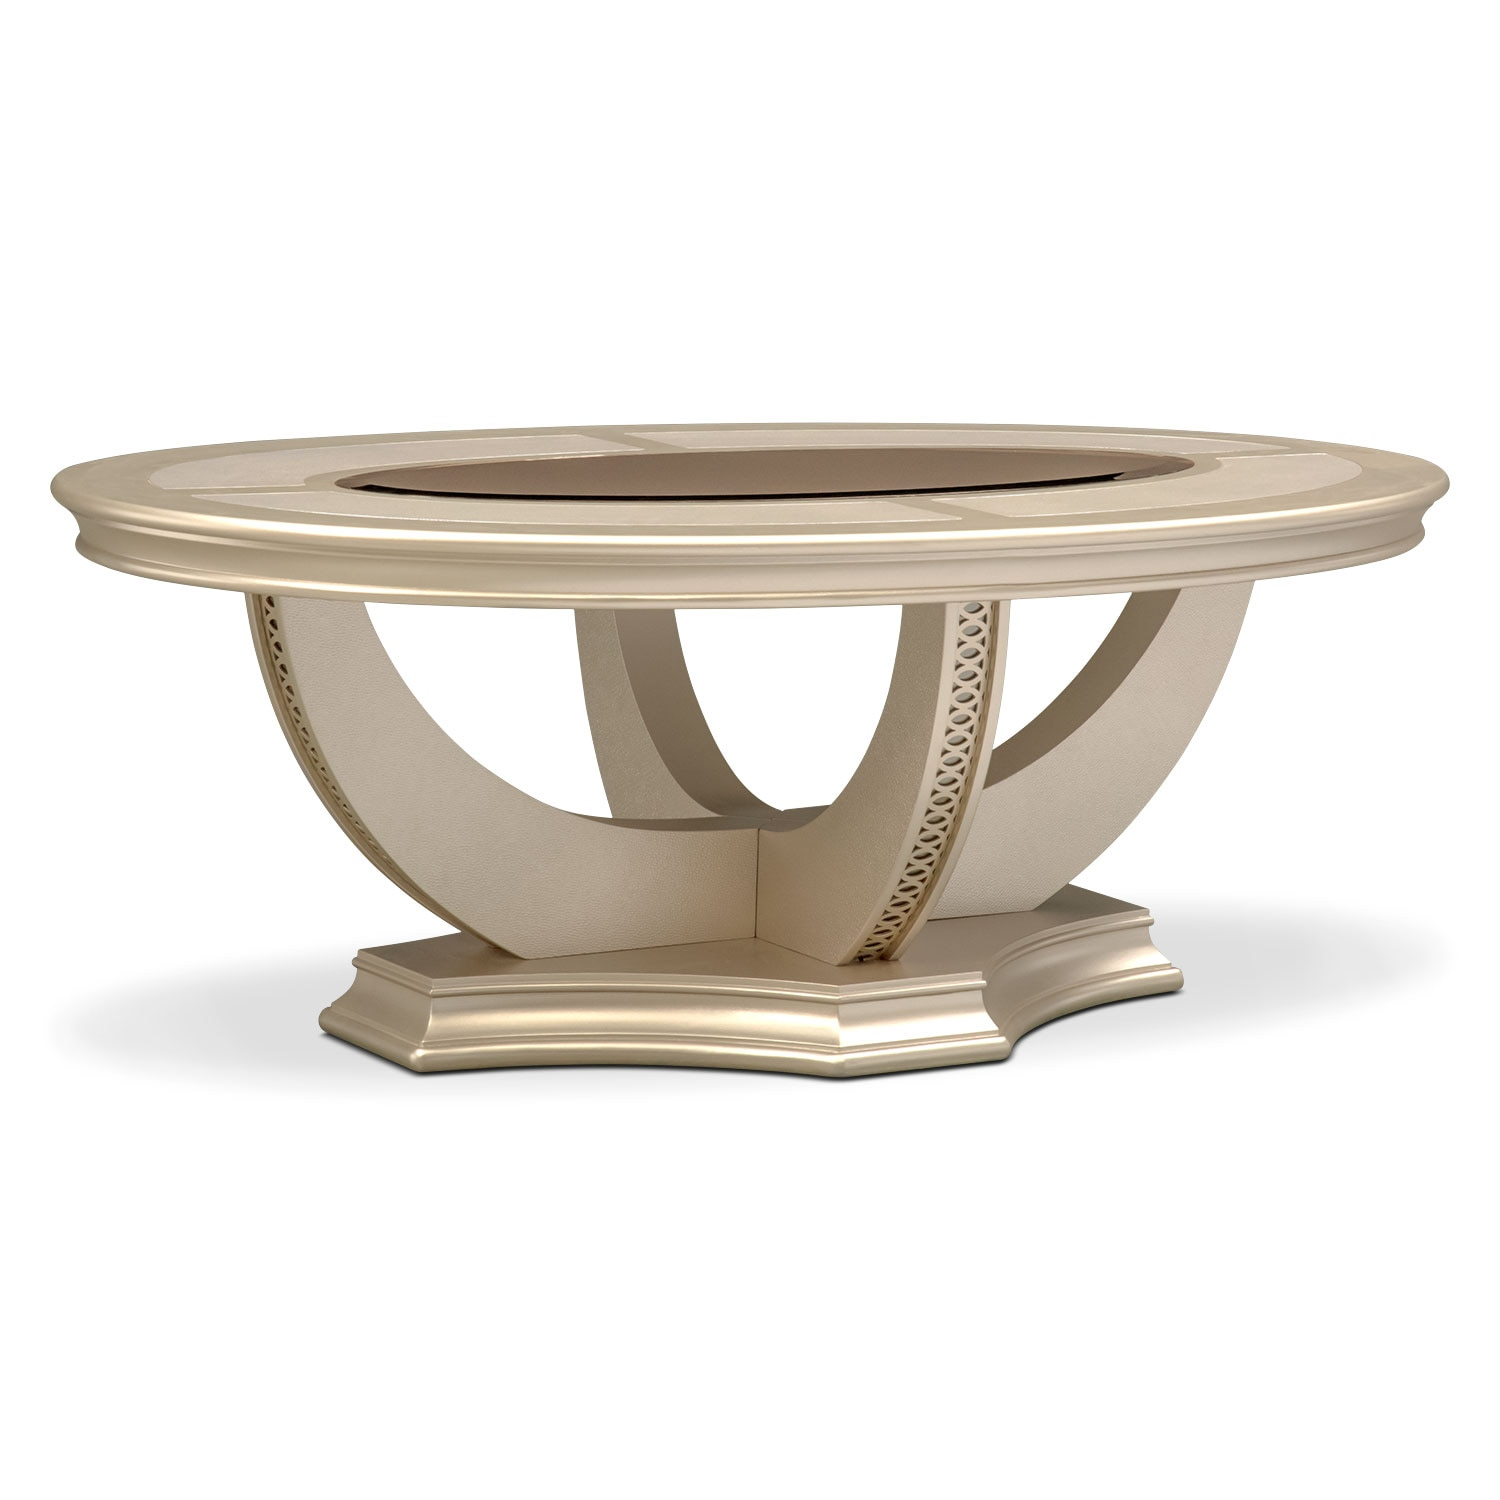 Allegro Cocktail Table - Platinum - Coffee Tables Living Room Tables American Signature Furniture